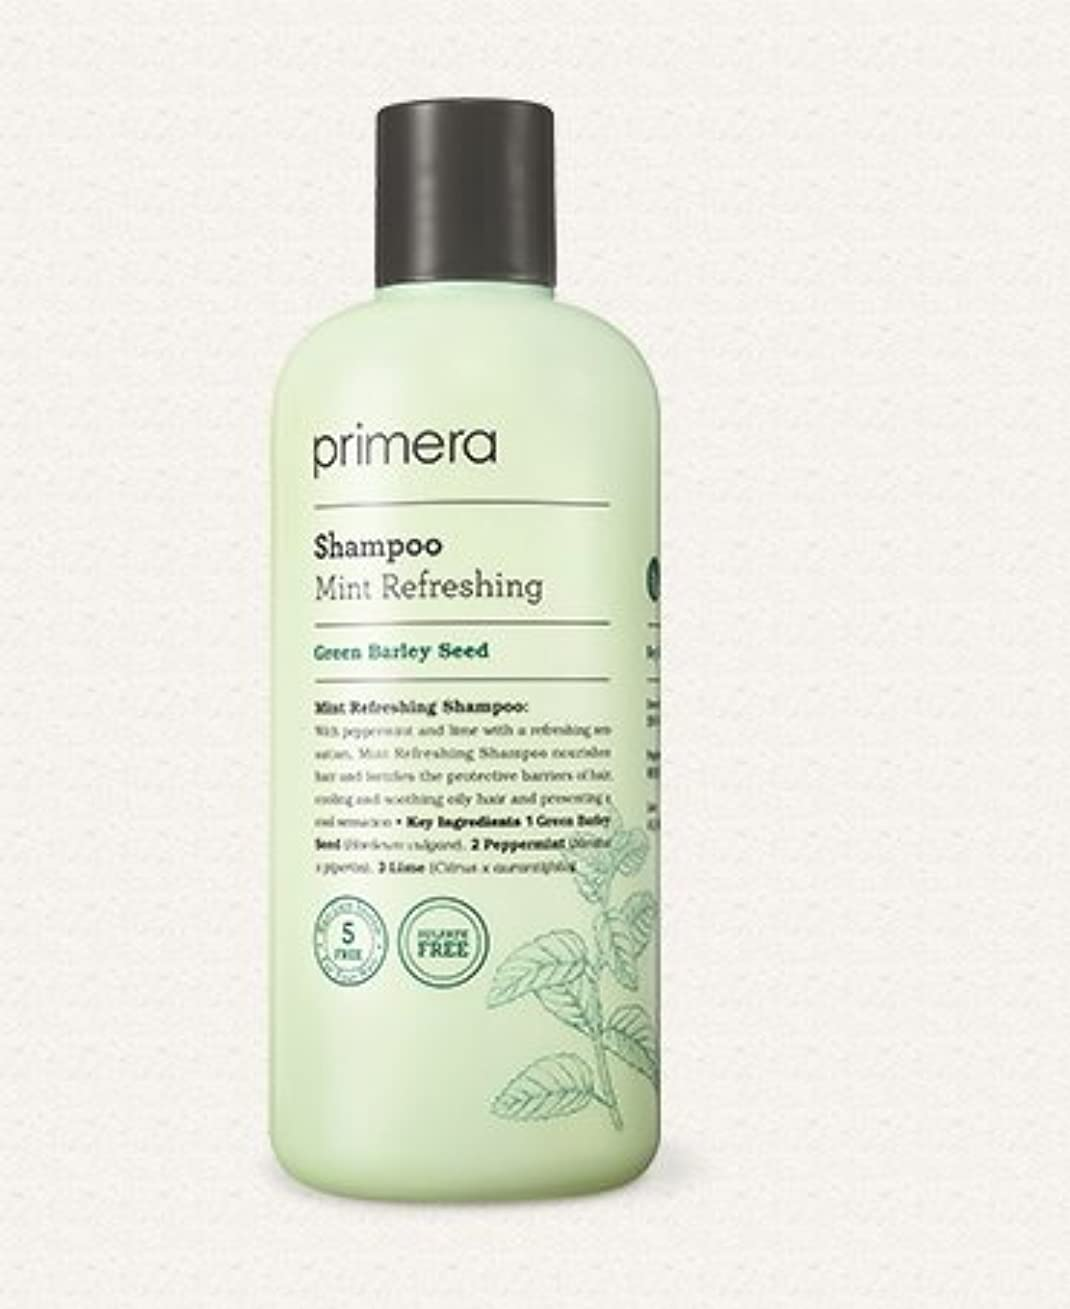 二年生クリーク肘Primera Mint Refreshing Shampoo 300ml K-beauty[並行輸入品]